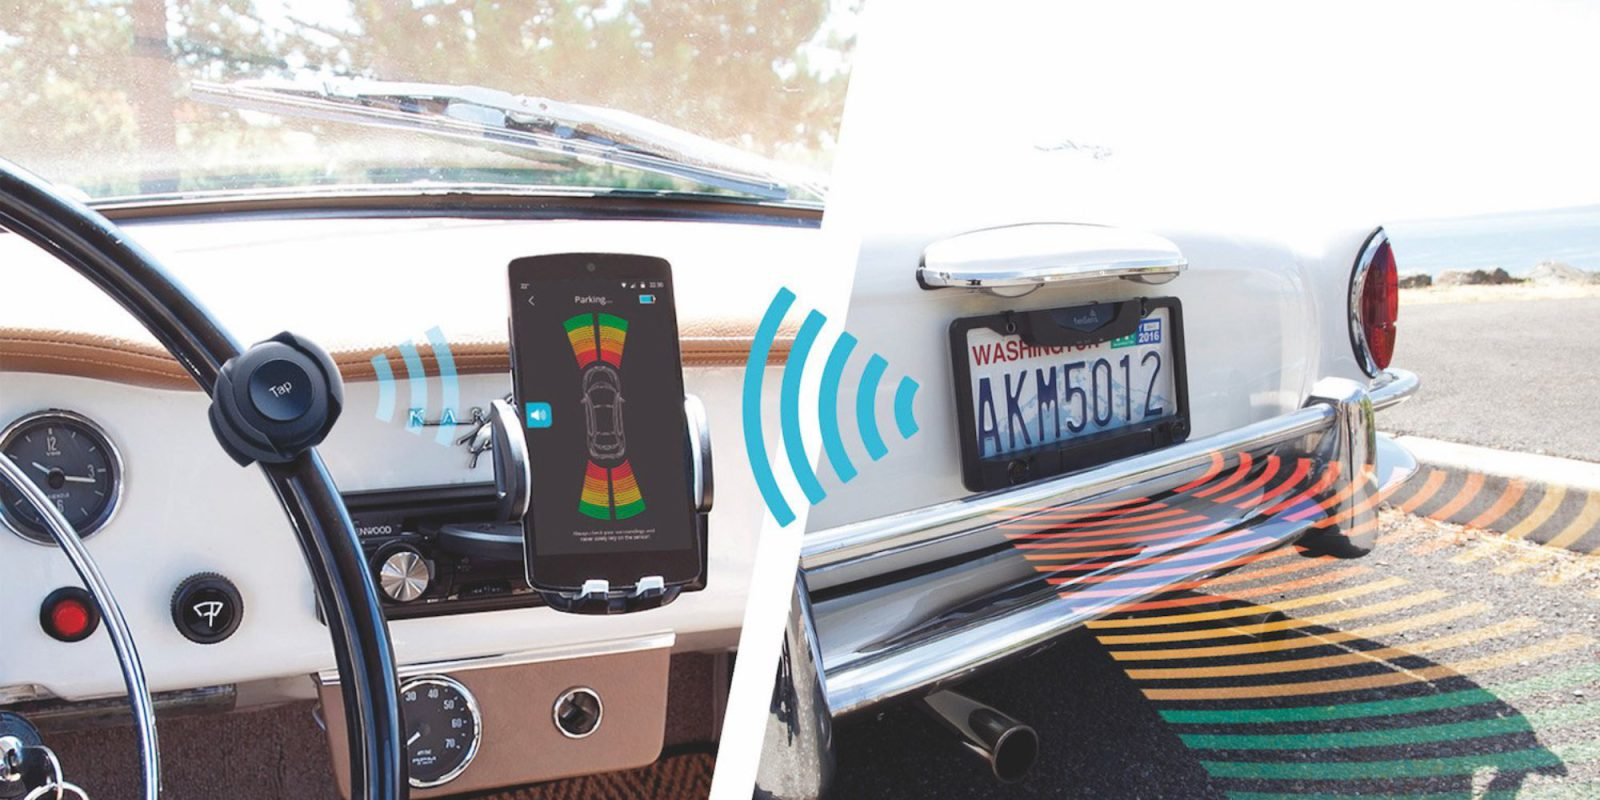 Modernize your car without hassle using this Smart Wireless